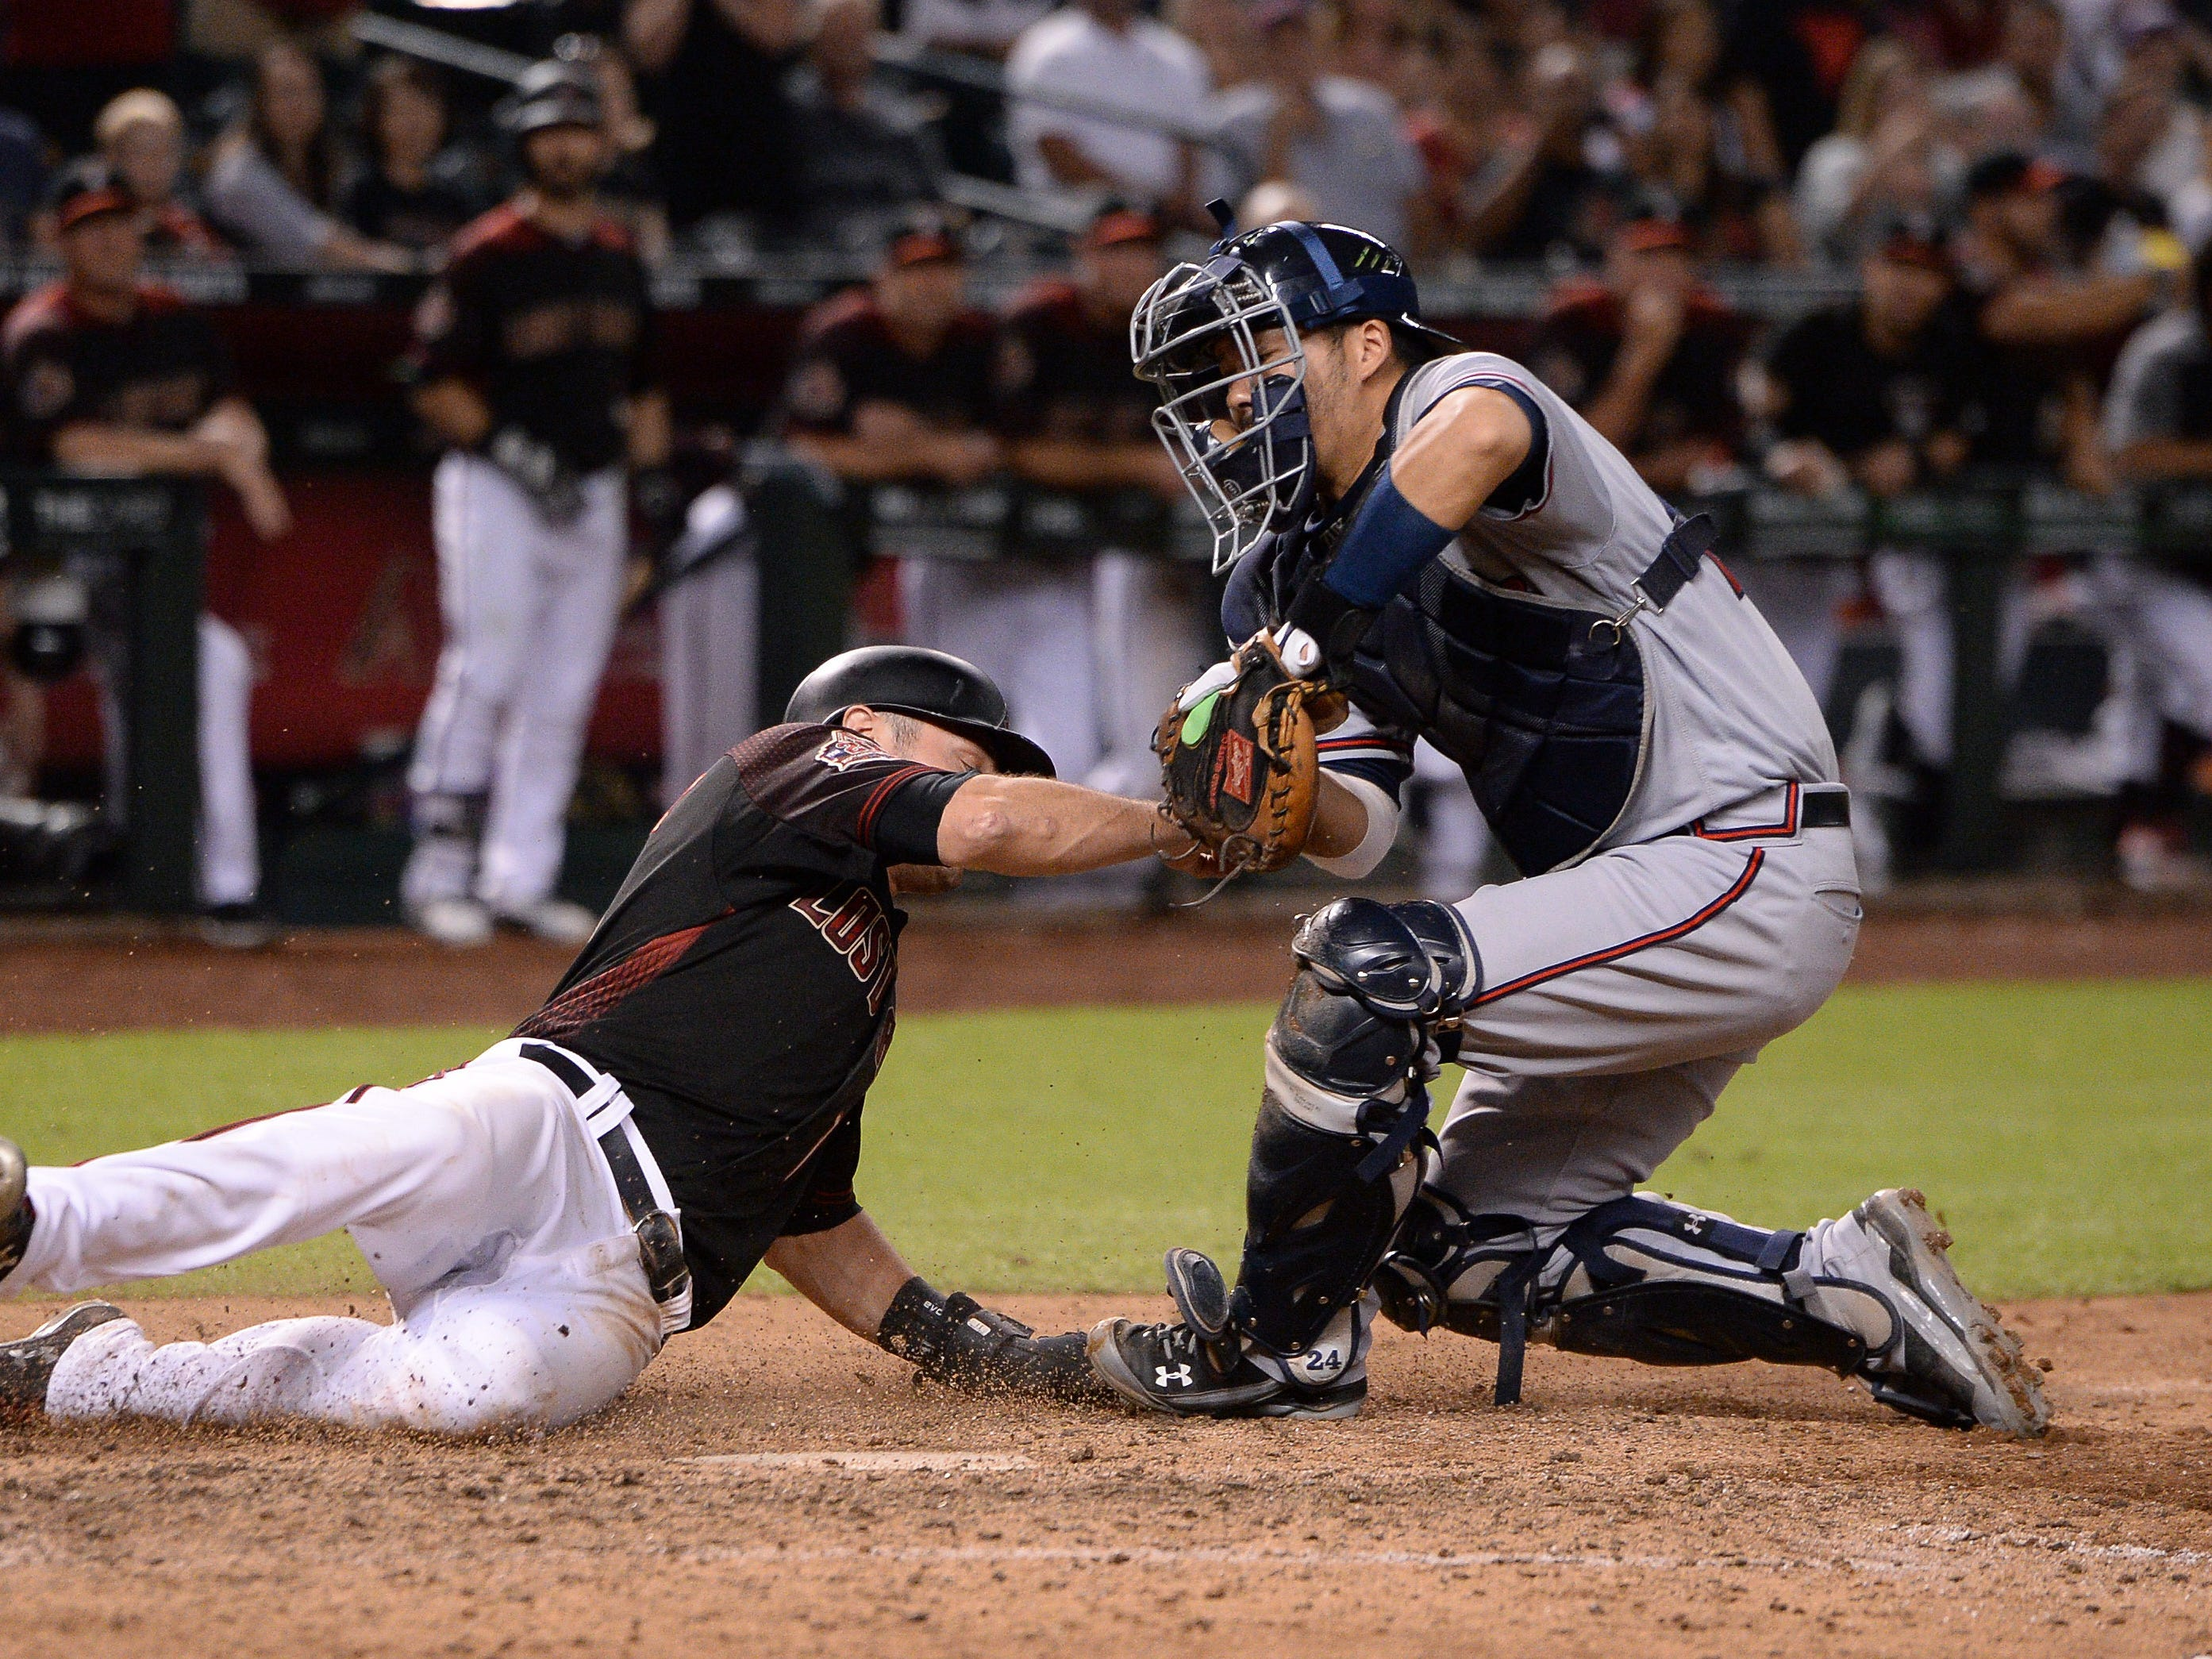 Sep 8, 2018; Phoenix, AZ, USA; Arizona Diamondbacks center fielder A.J. Pollock (left) is tagged out at home by Atlanta Braves catcher Kurt Suzuki (right) during the ninth inning at Chase Field. Mandatory Credit: Orlando Ramirez-USA TODAY Sports